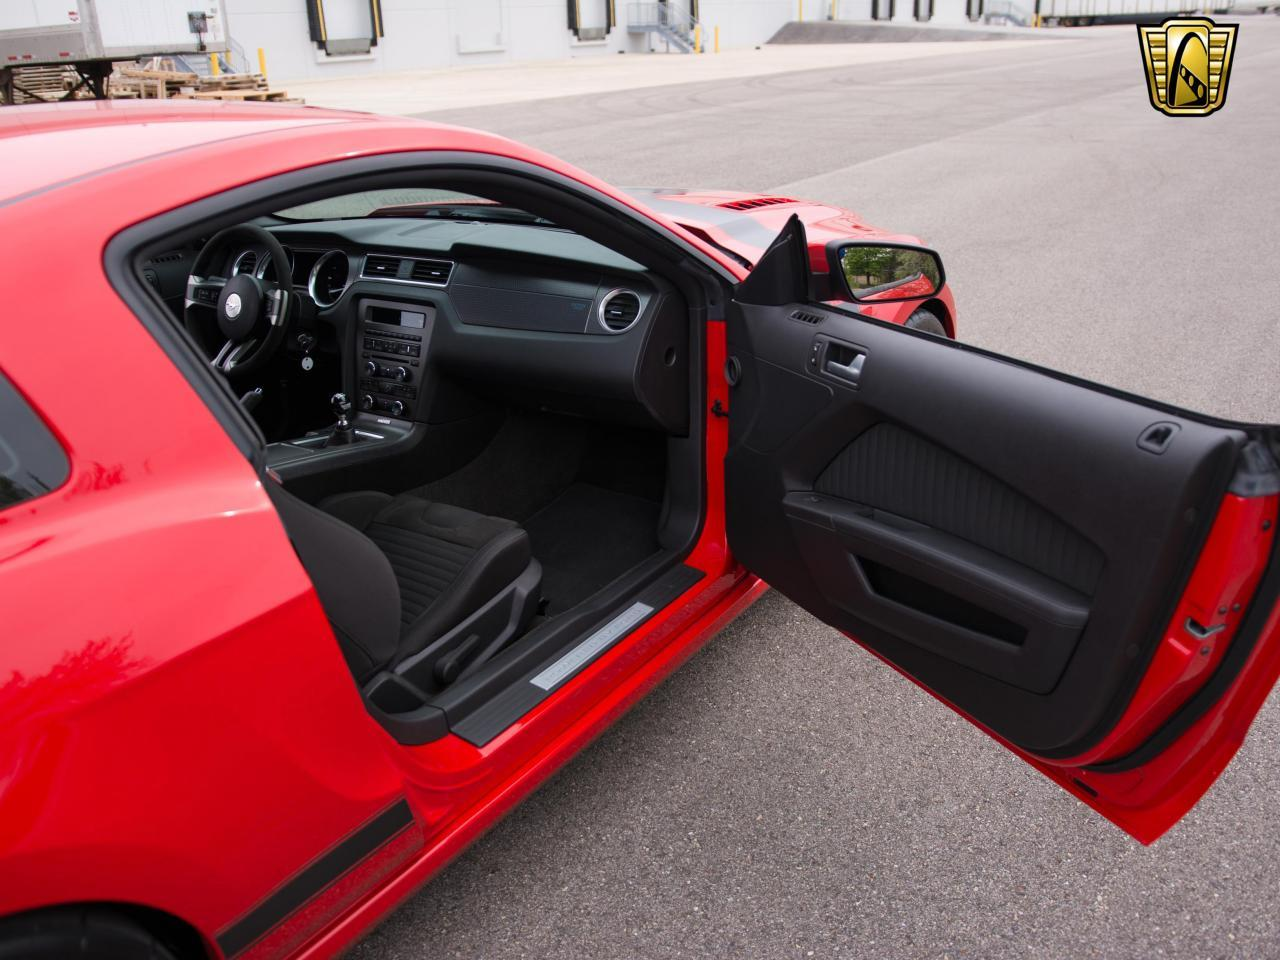 Large Picture of '13 Ford Mustang located in Kenosha Wisconsin - $49,995.00 - L1AH